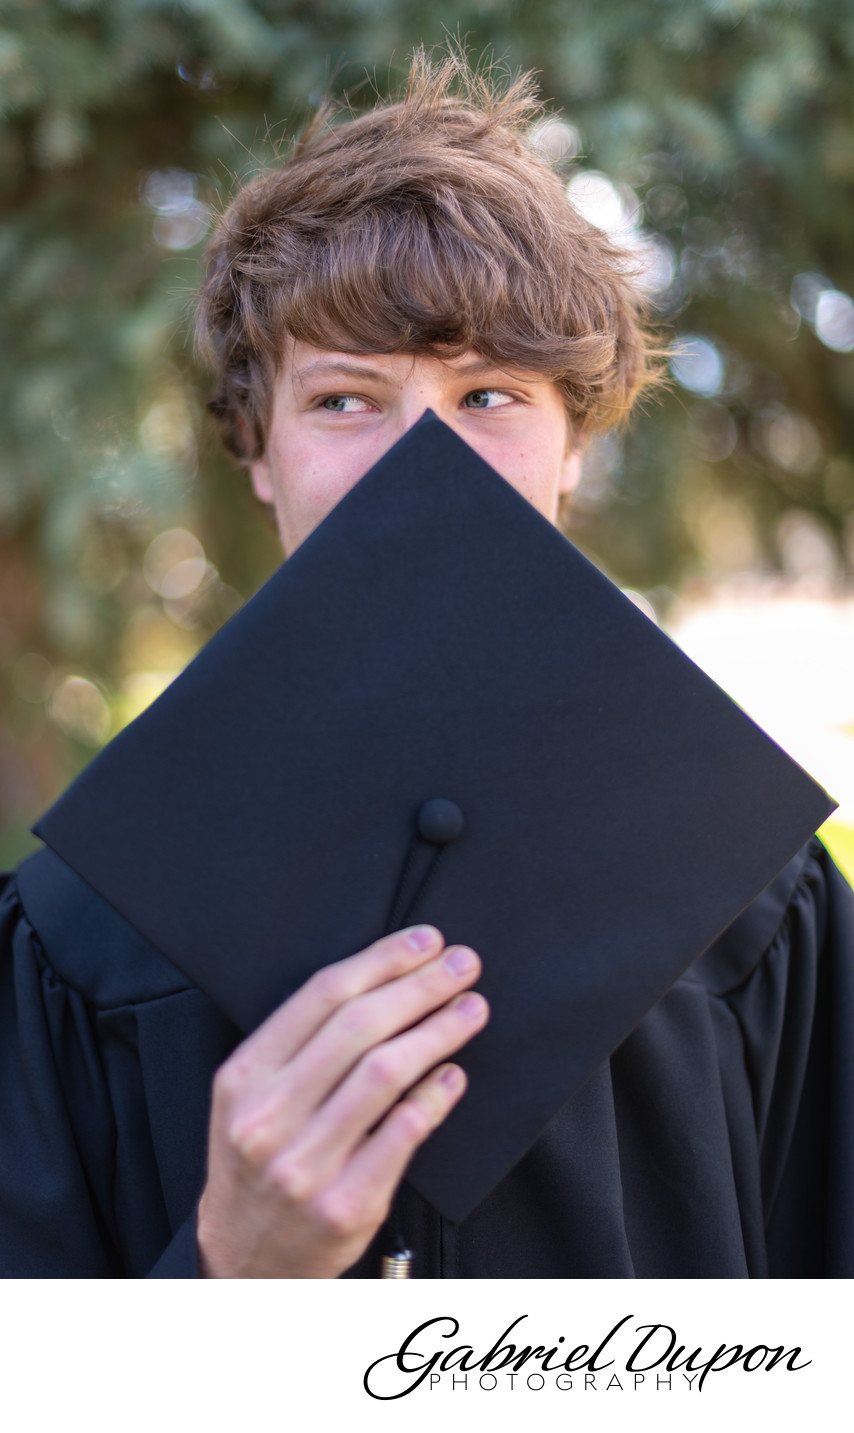 Just Graduated Portrait